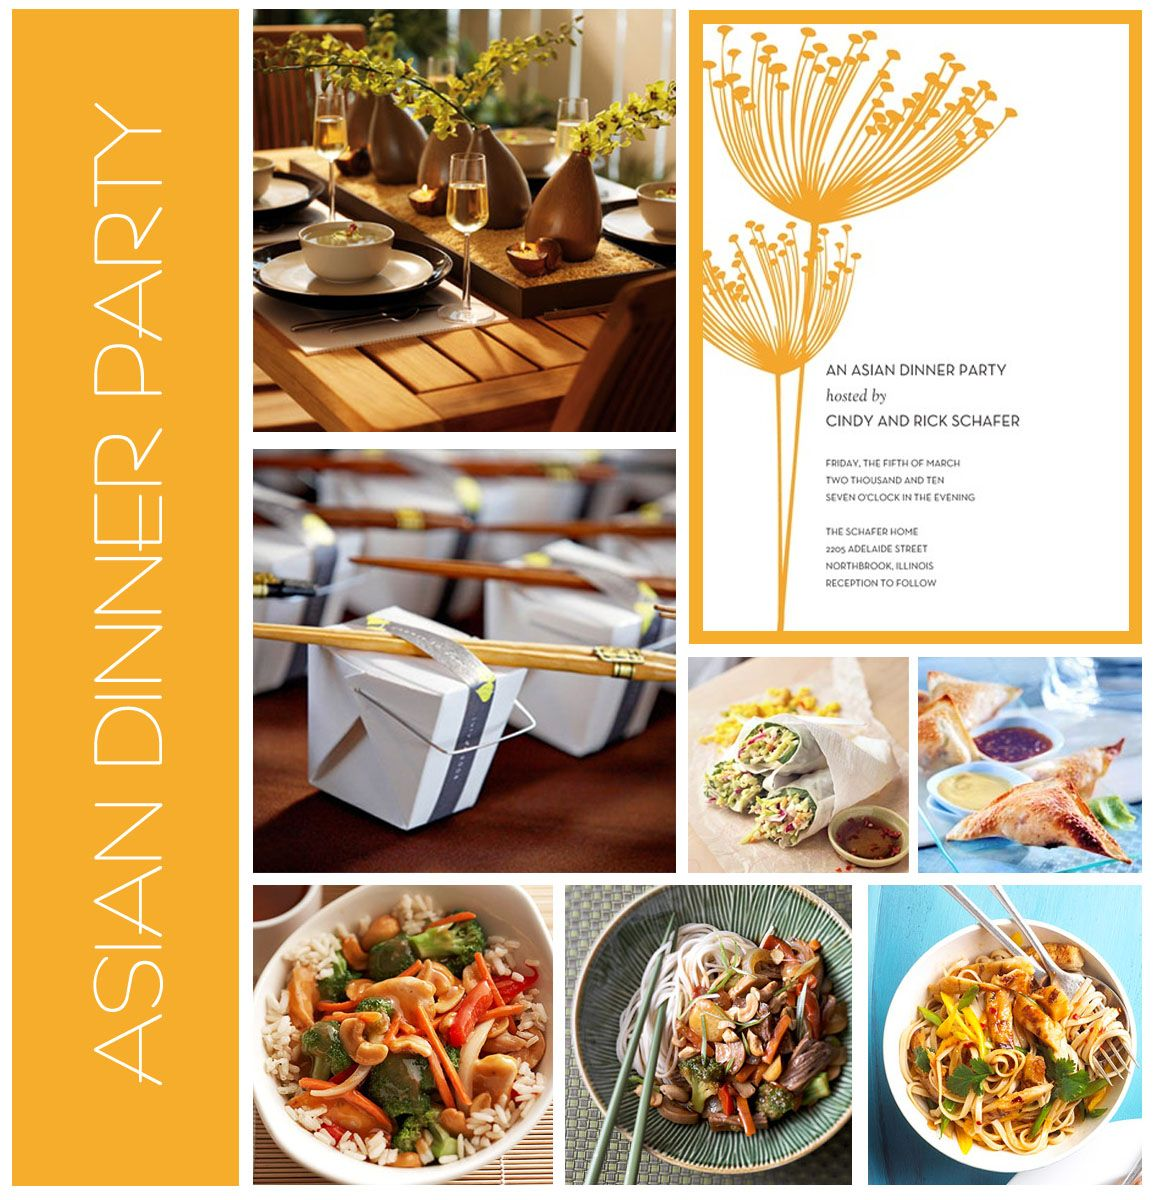 Chinese Dinner Party Ideas Part - 15: Chinese Party Decorations   Asian Dinner Party Ideas